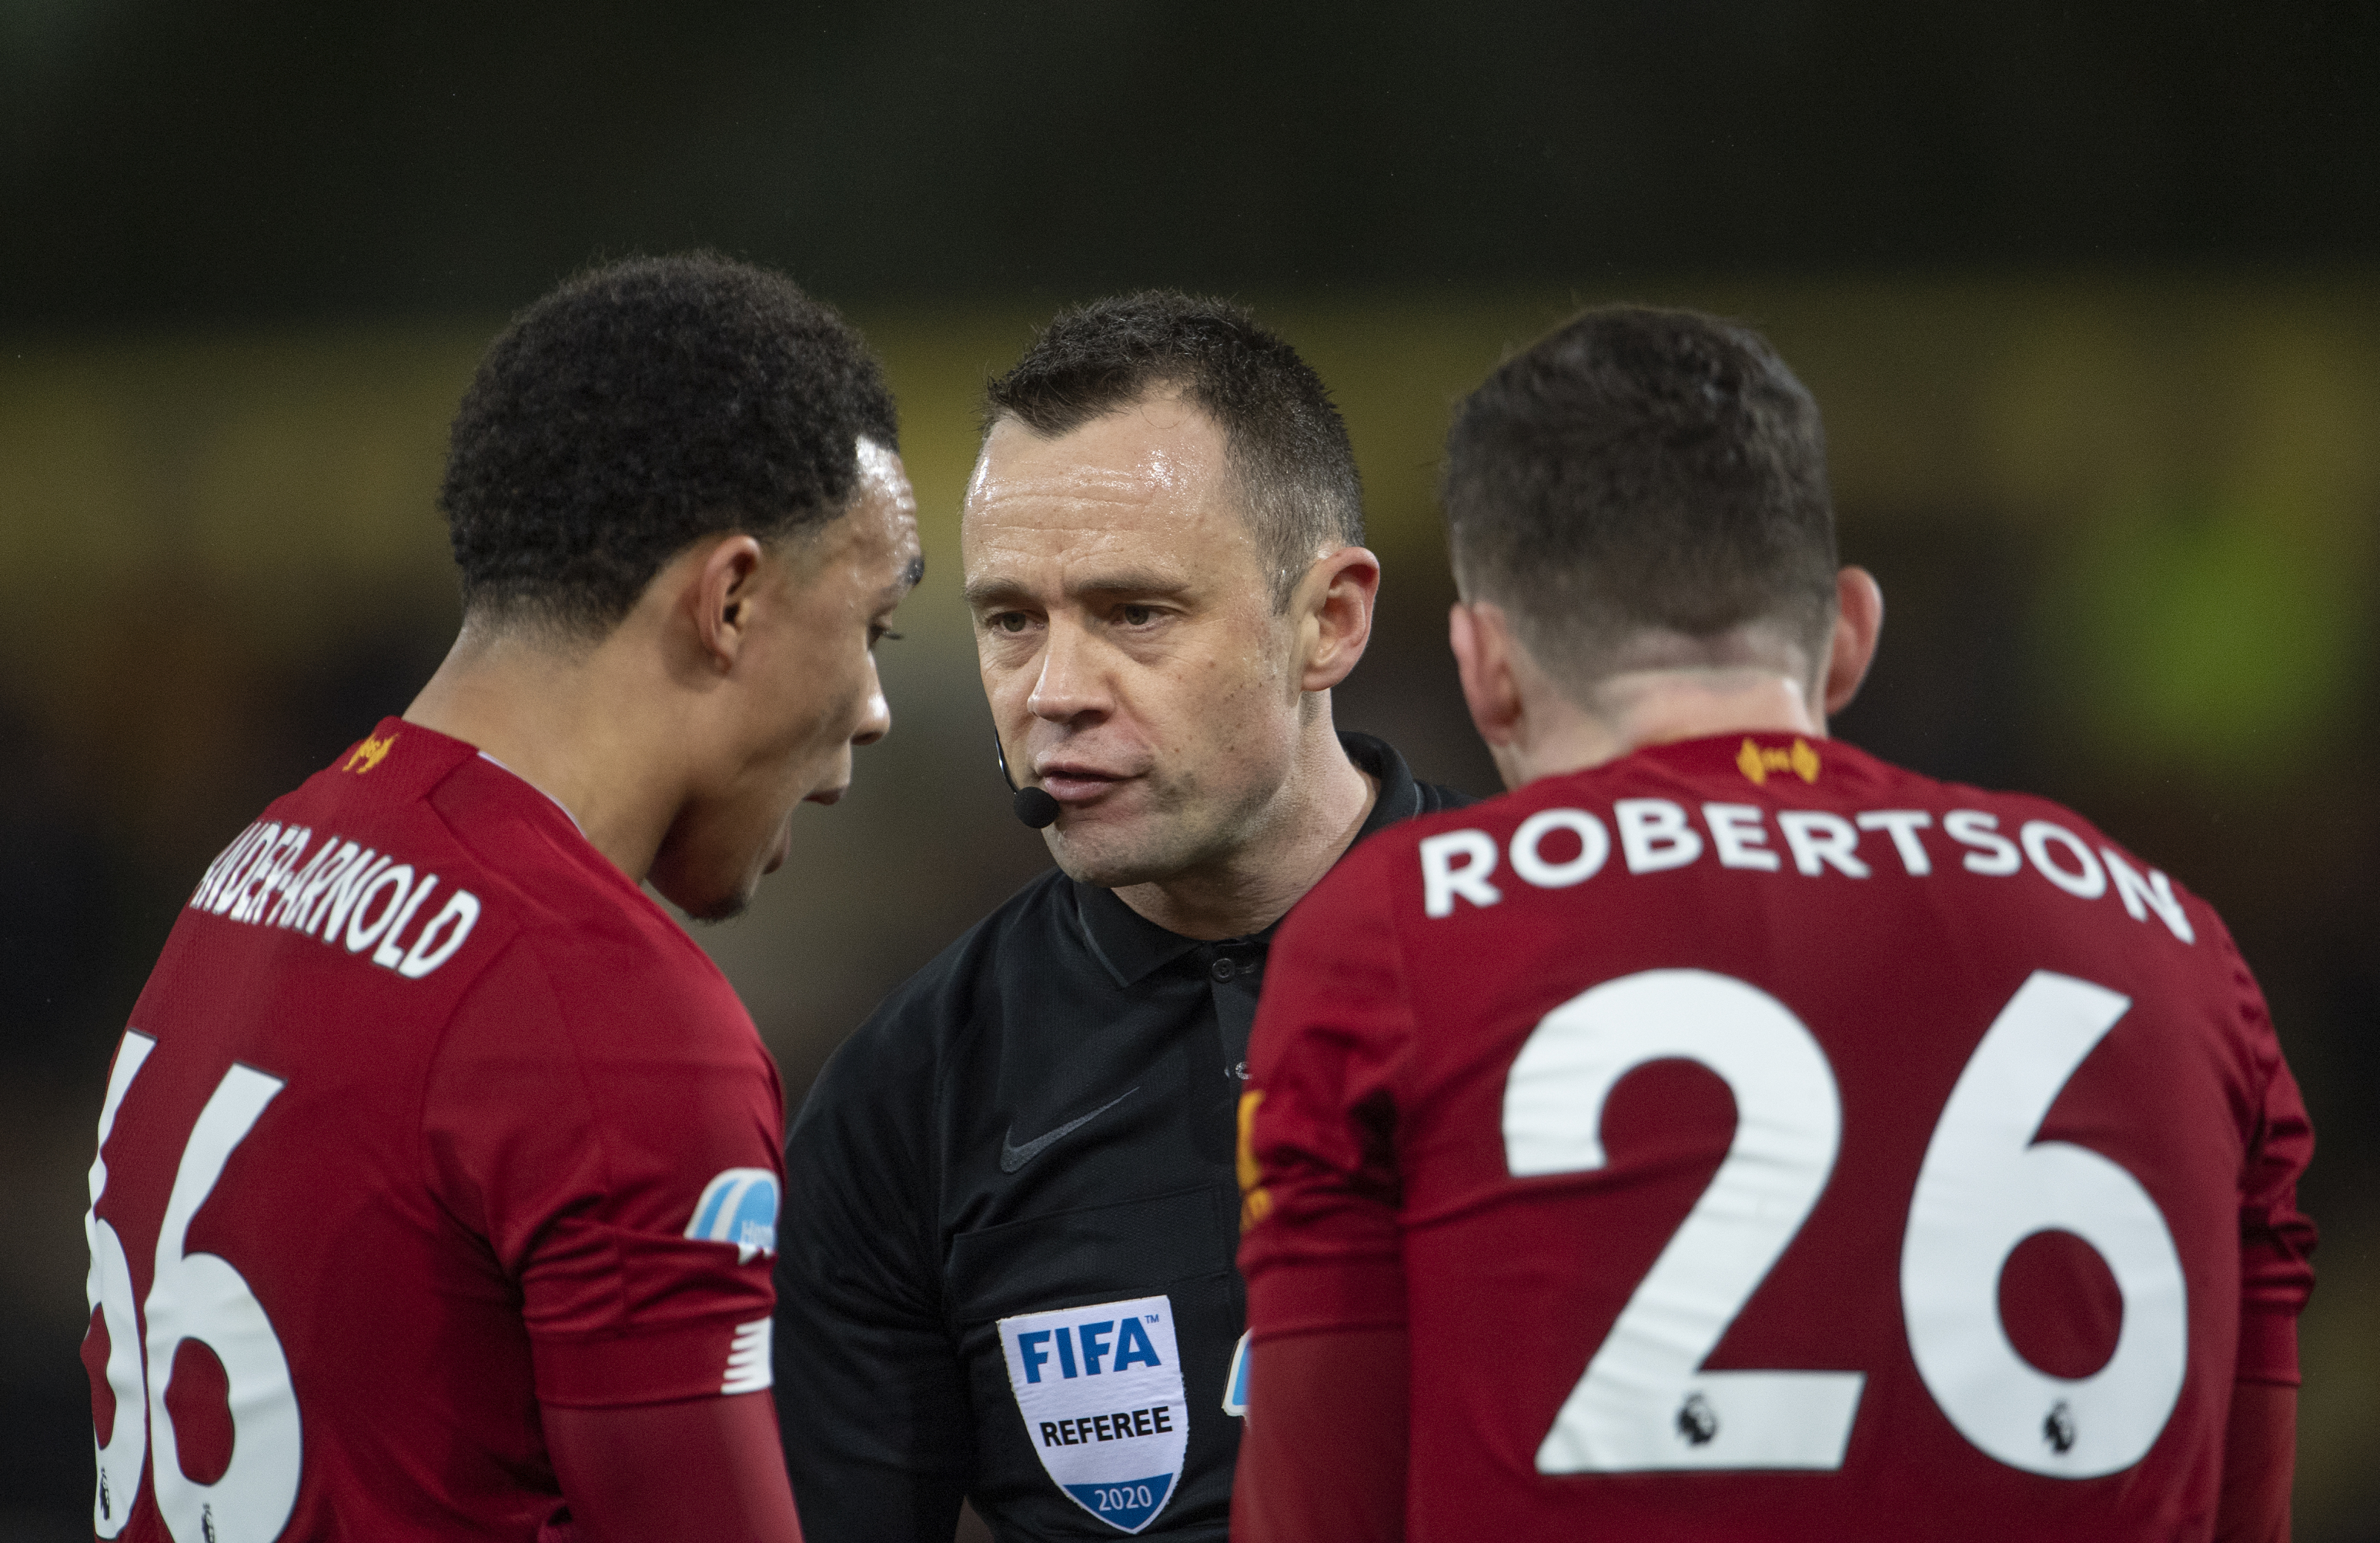 Andy Robertson calls out Trent Alexander-Arnold